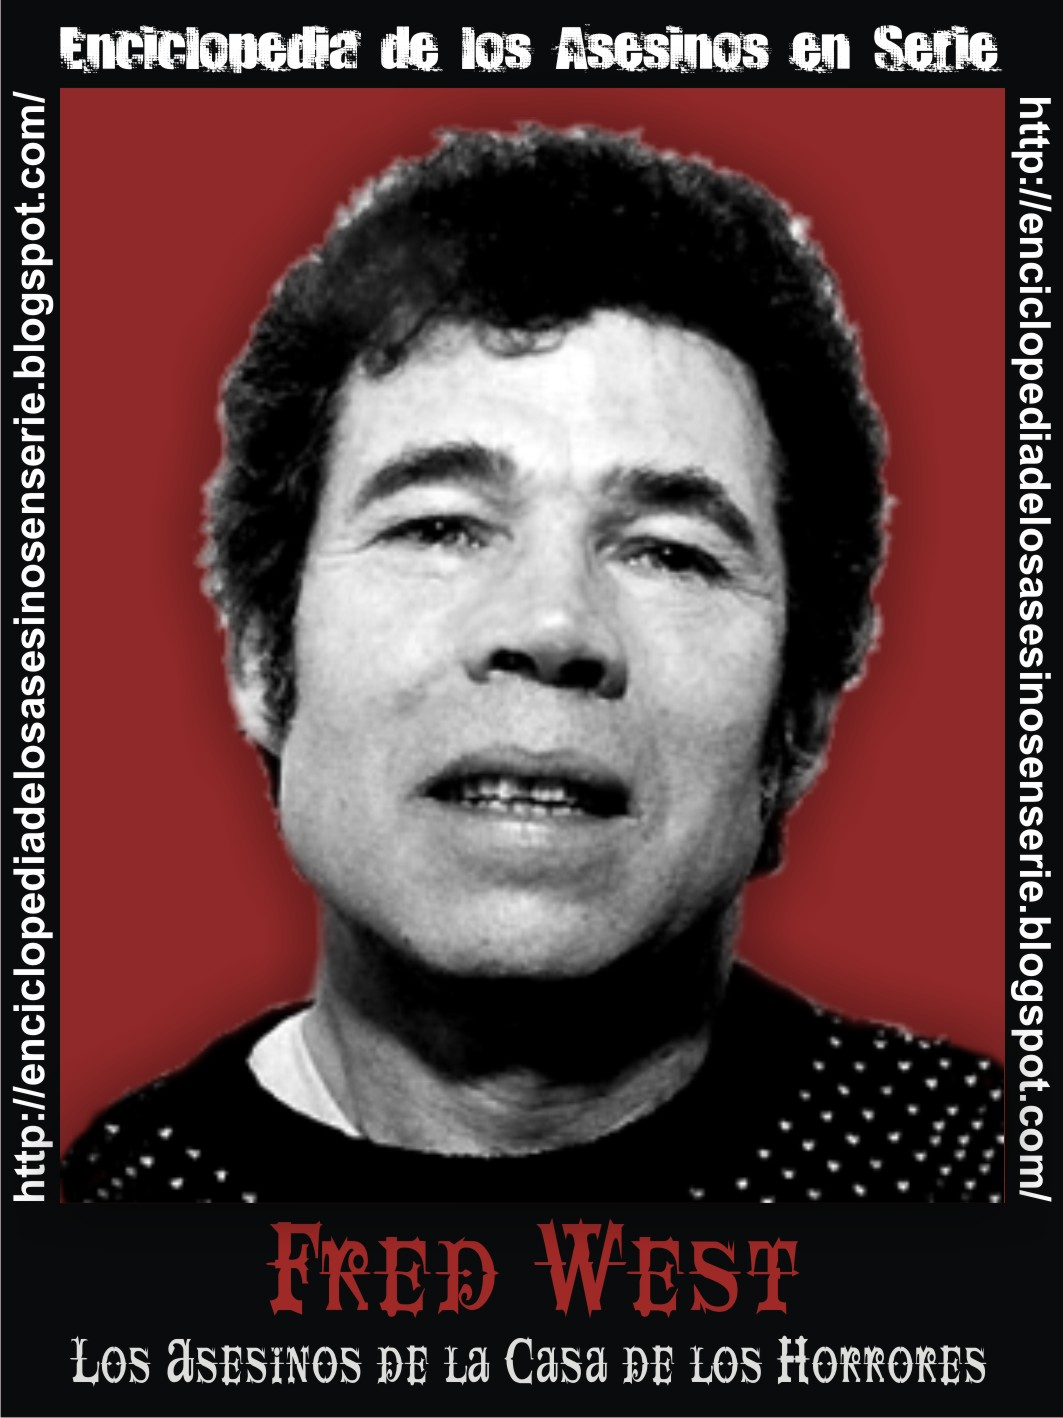 fred west - photo #19